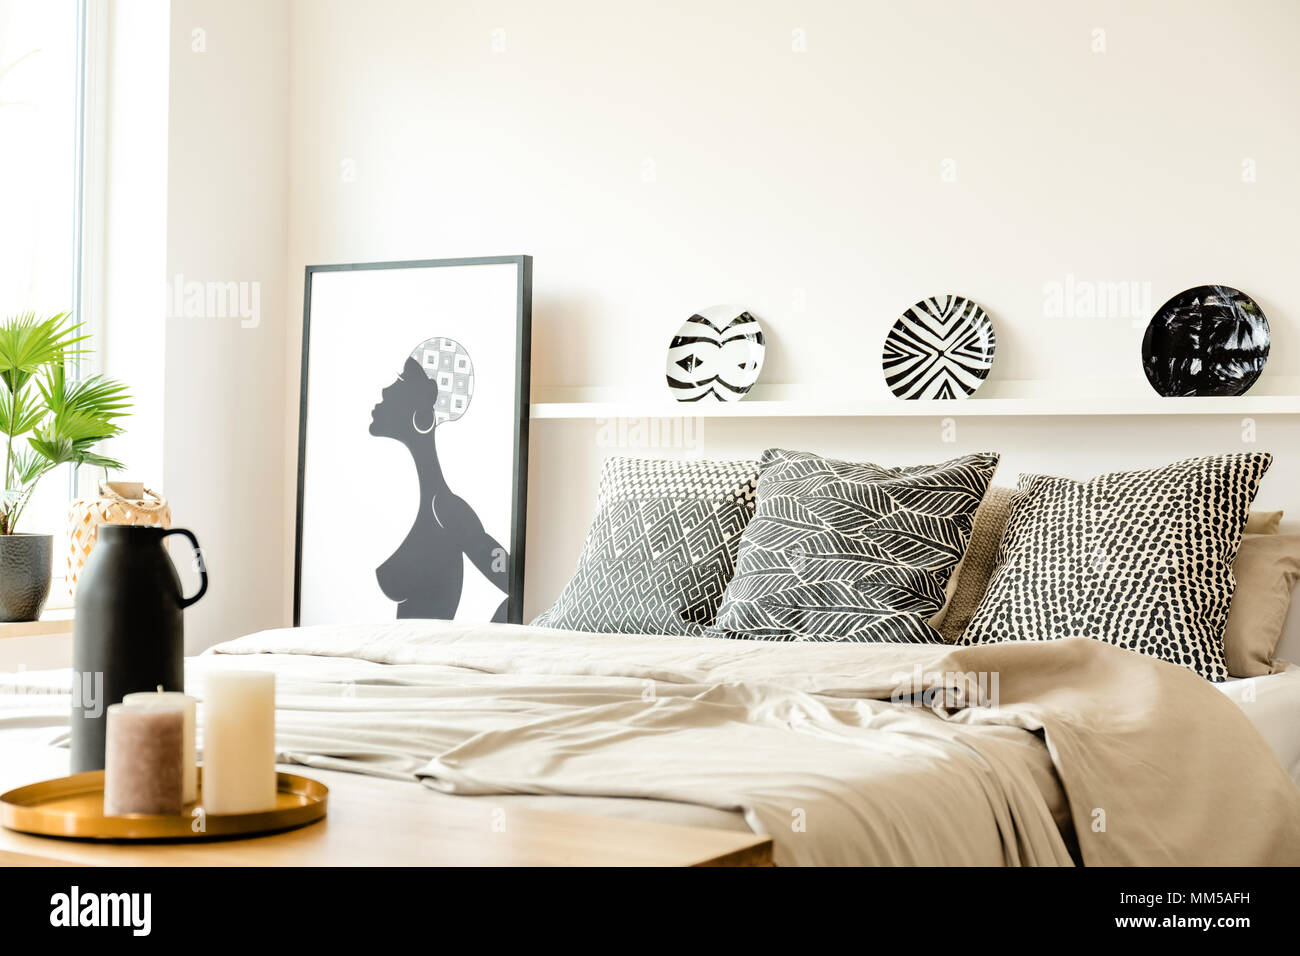 Patterned plates on shelf above bed in monochromatic bedroom interior with poster